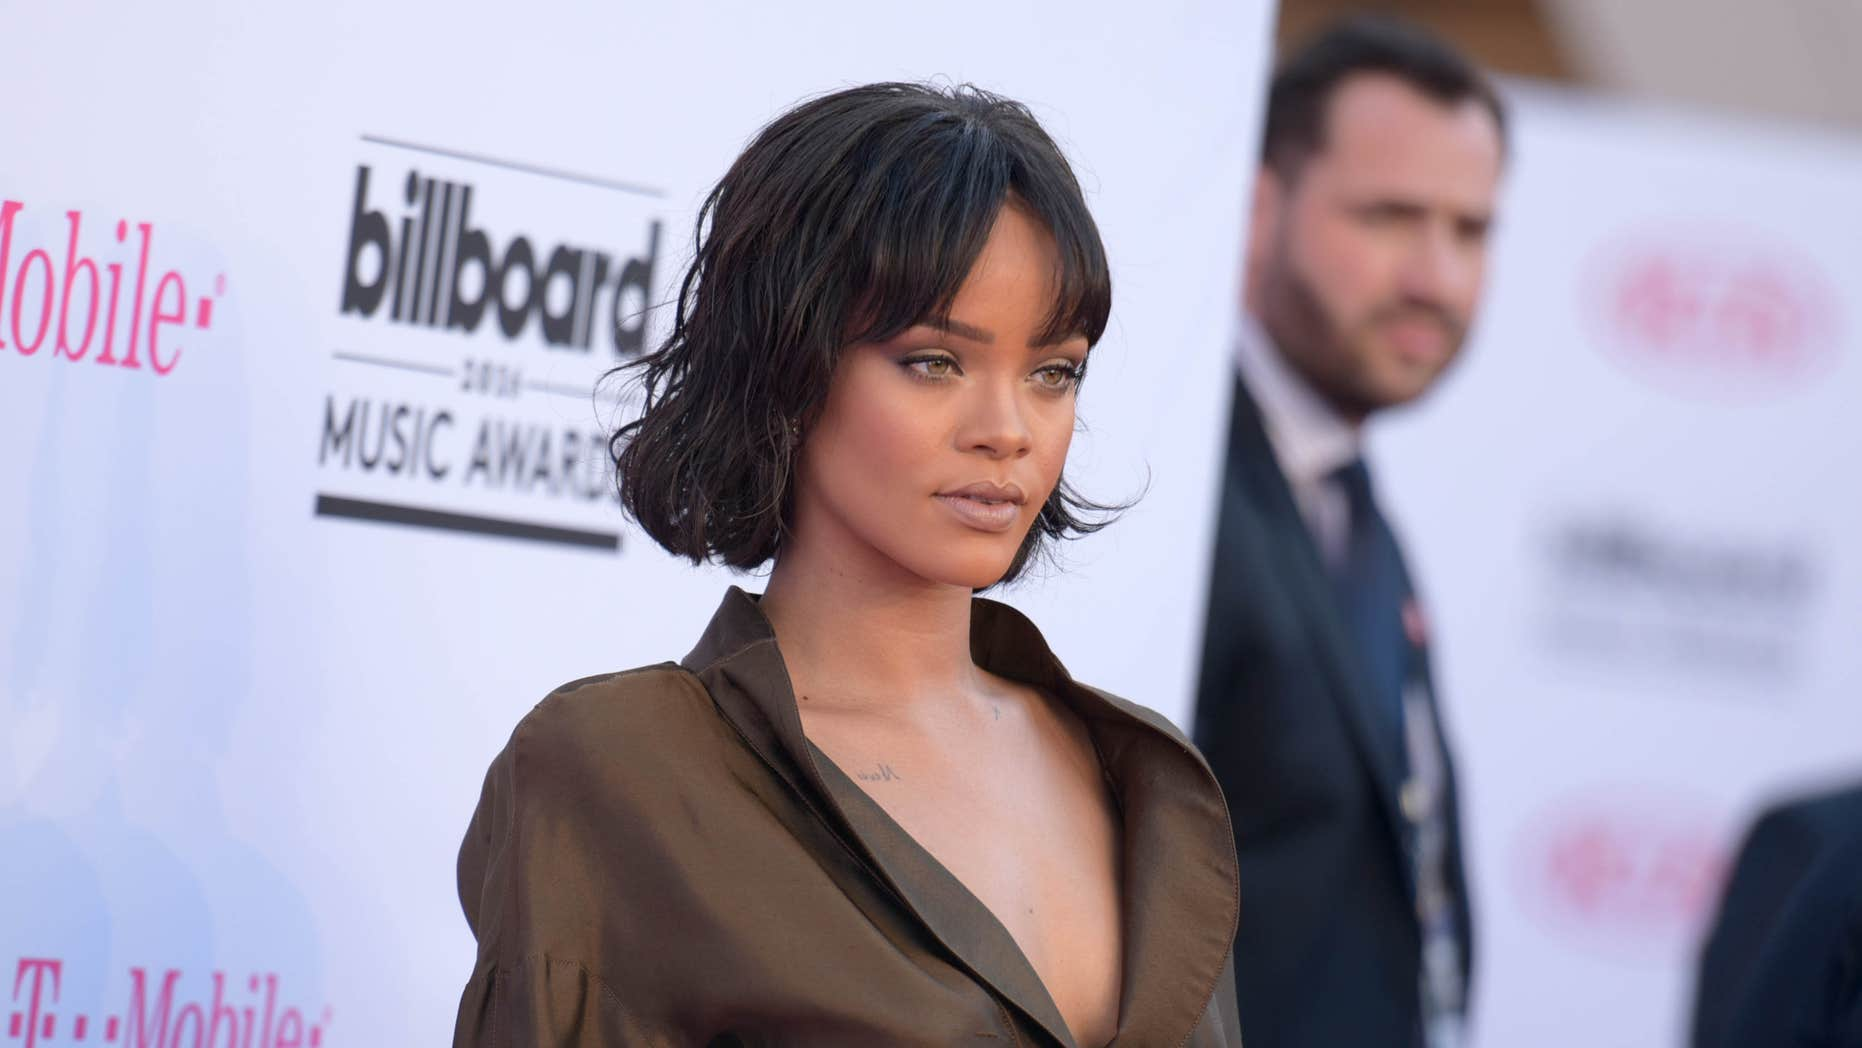 FILE - In this May 22, 2016 file photo, Rihanna arrives at the Billboard Music Awards in Las Vegas.